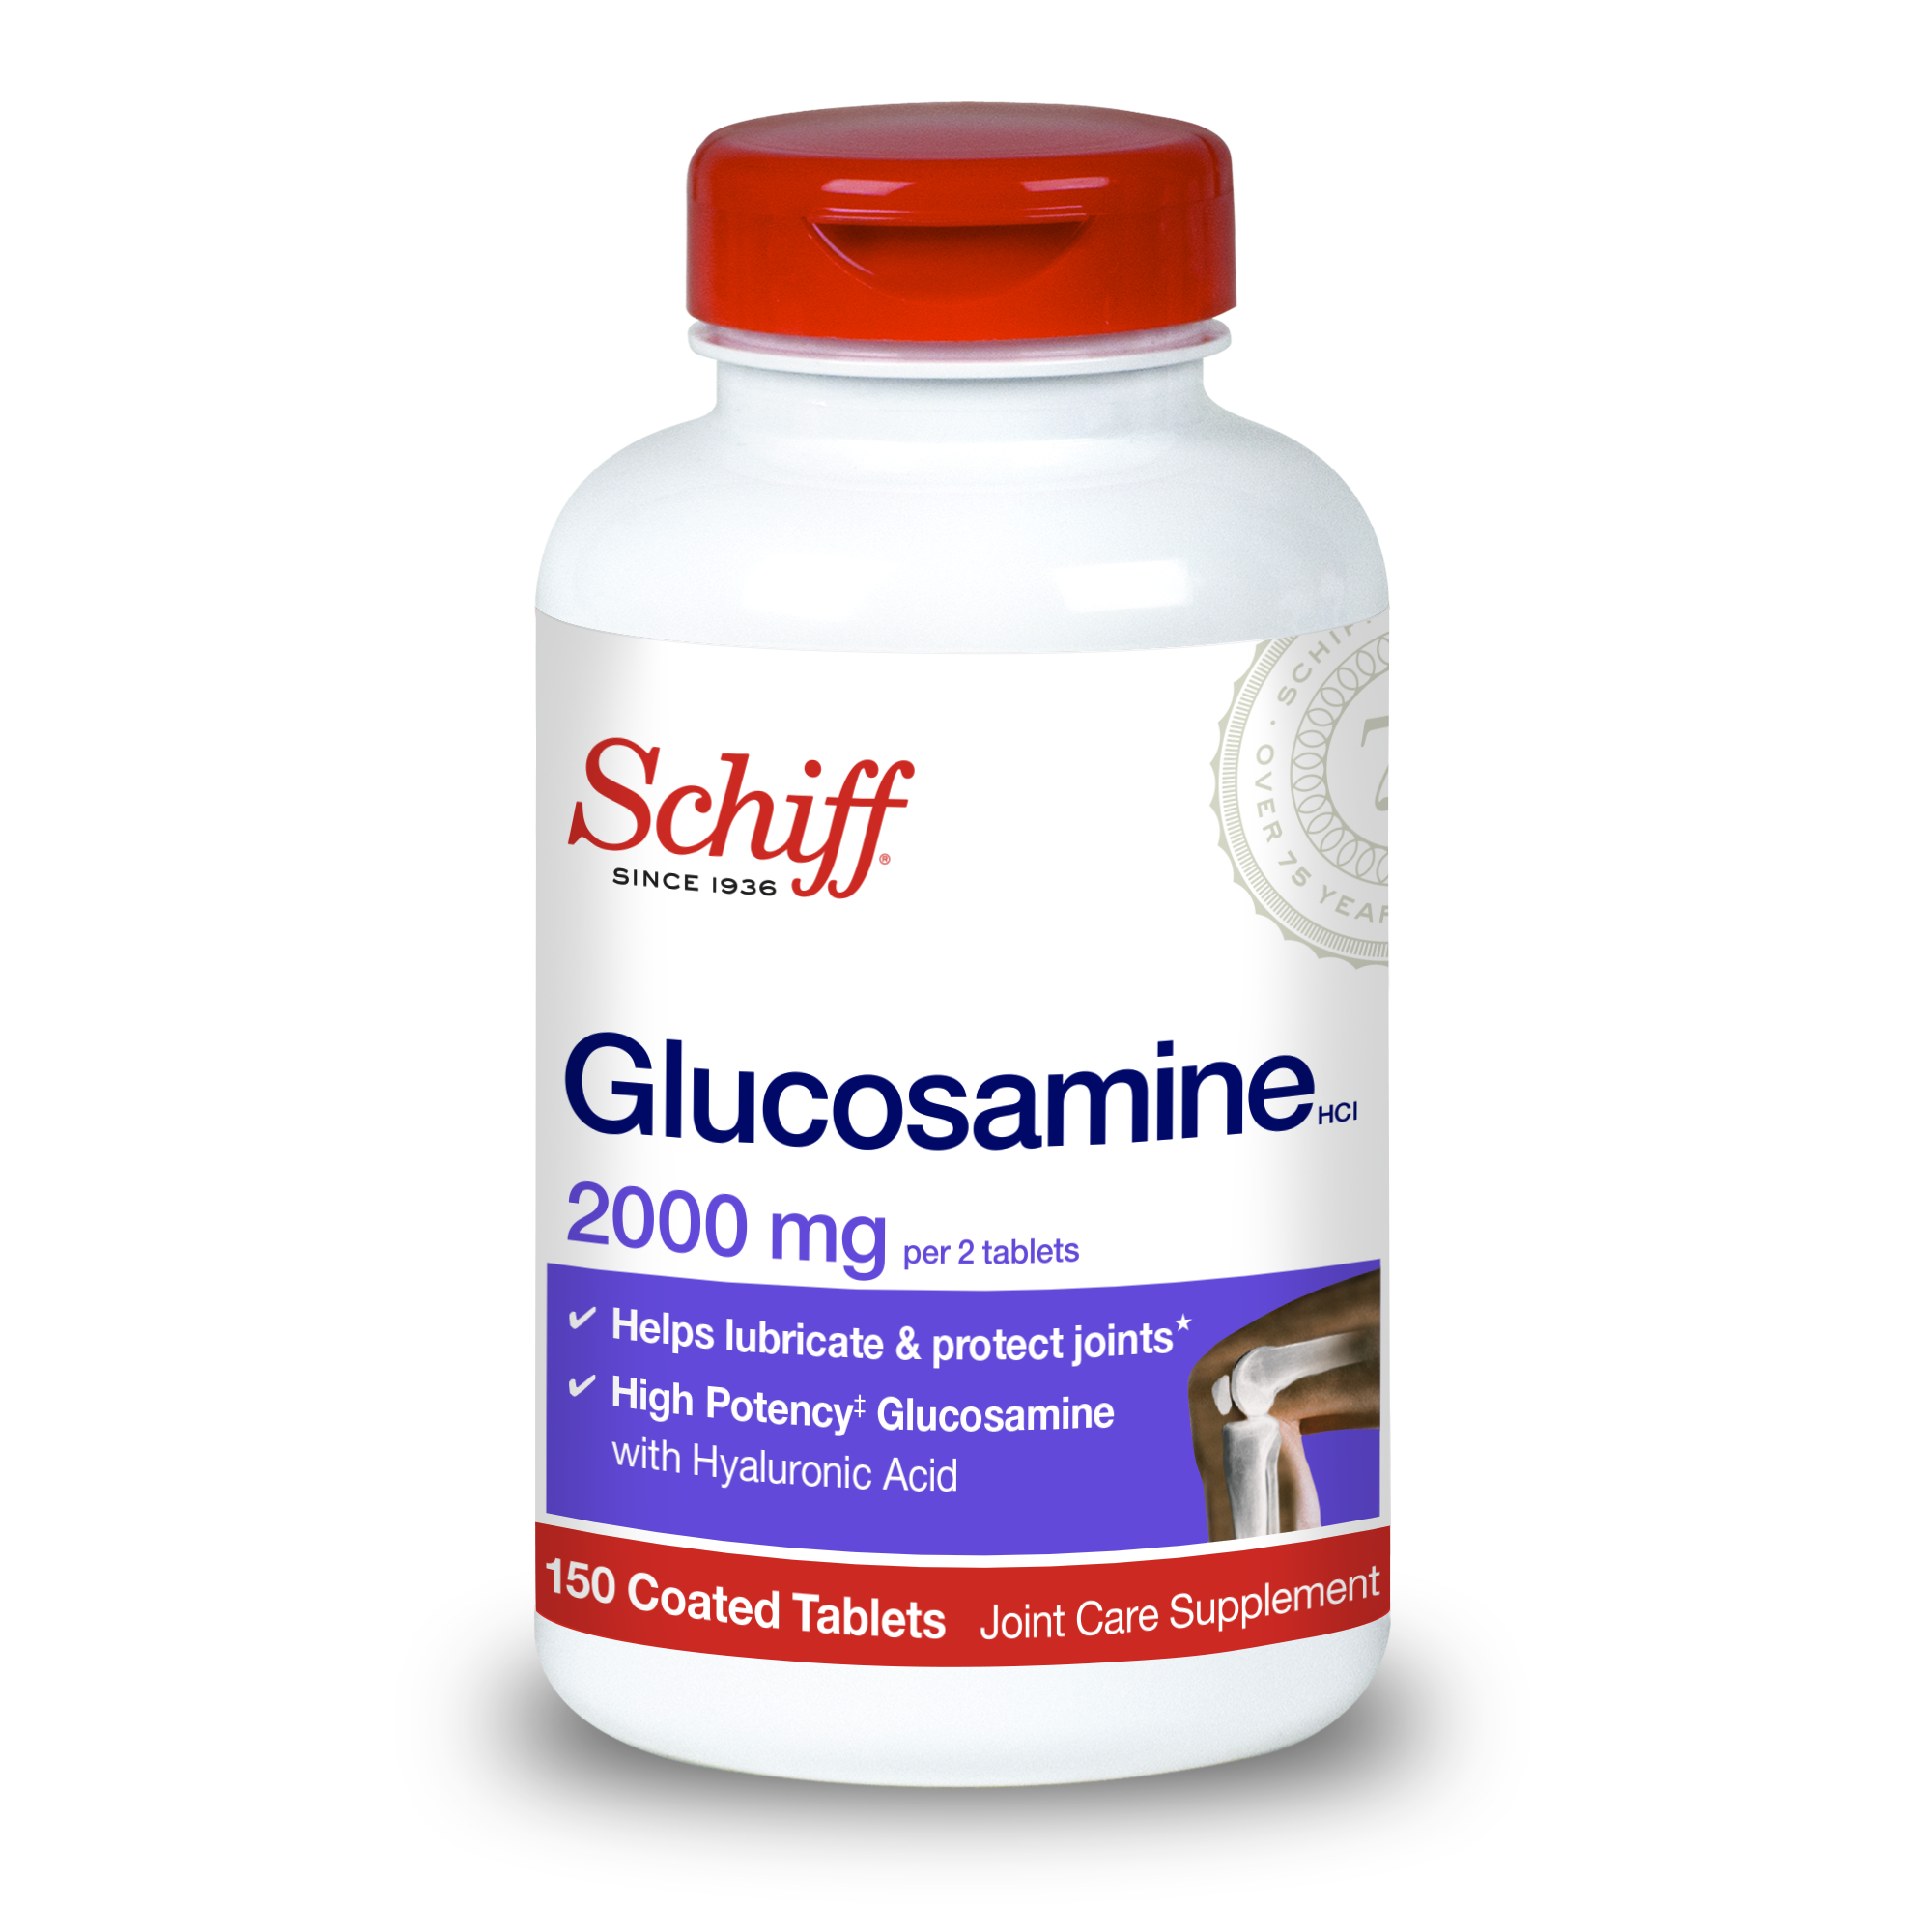 Schiff Glucosamine 2000mg with Hyaluronic Acid, 150 tablets - Joint Supplement